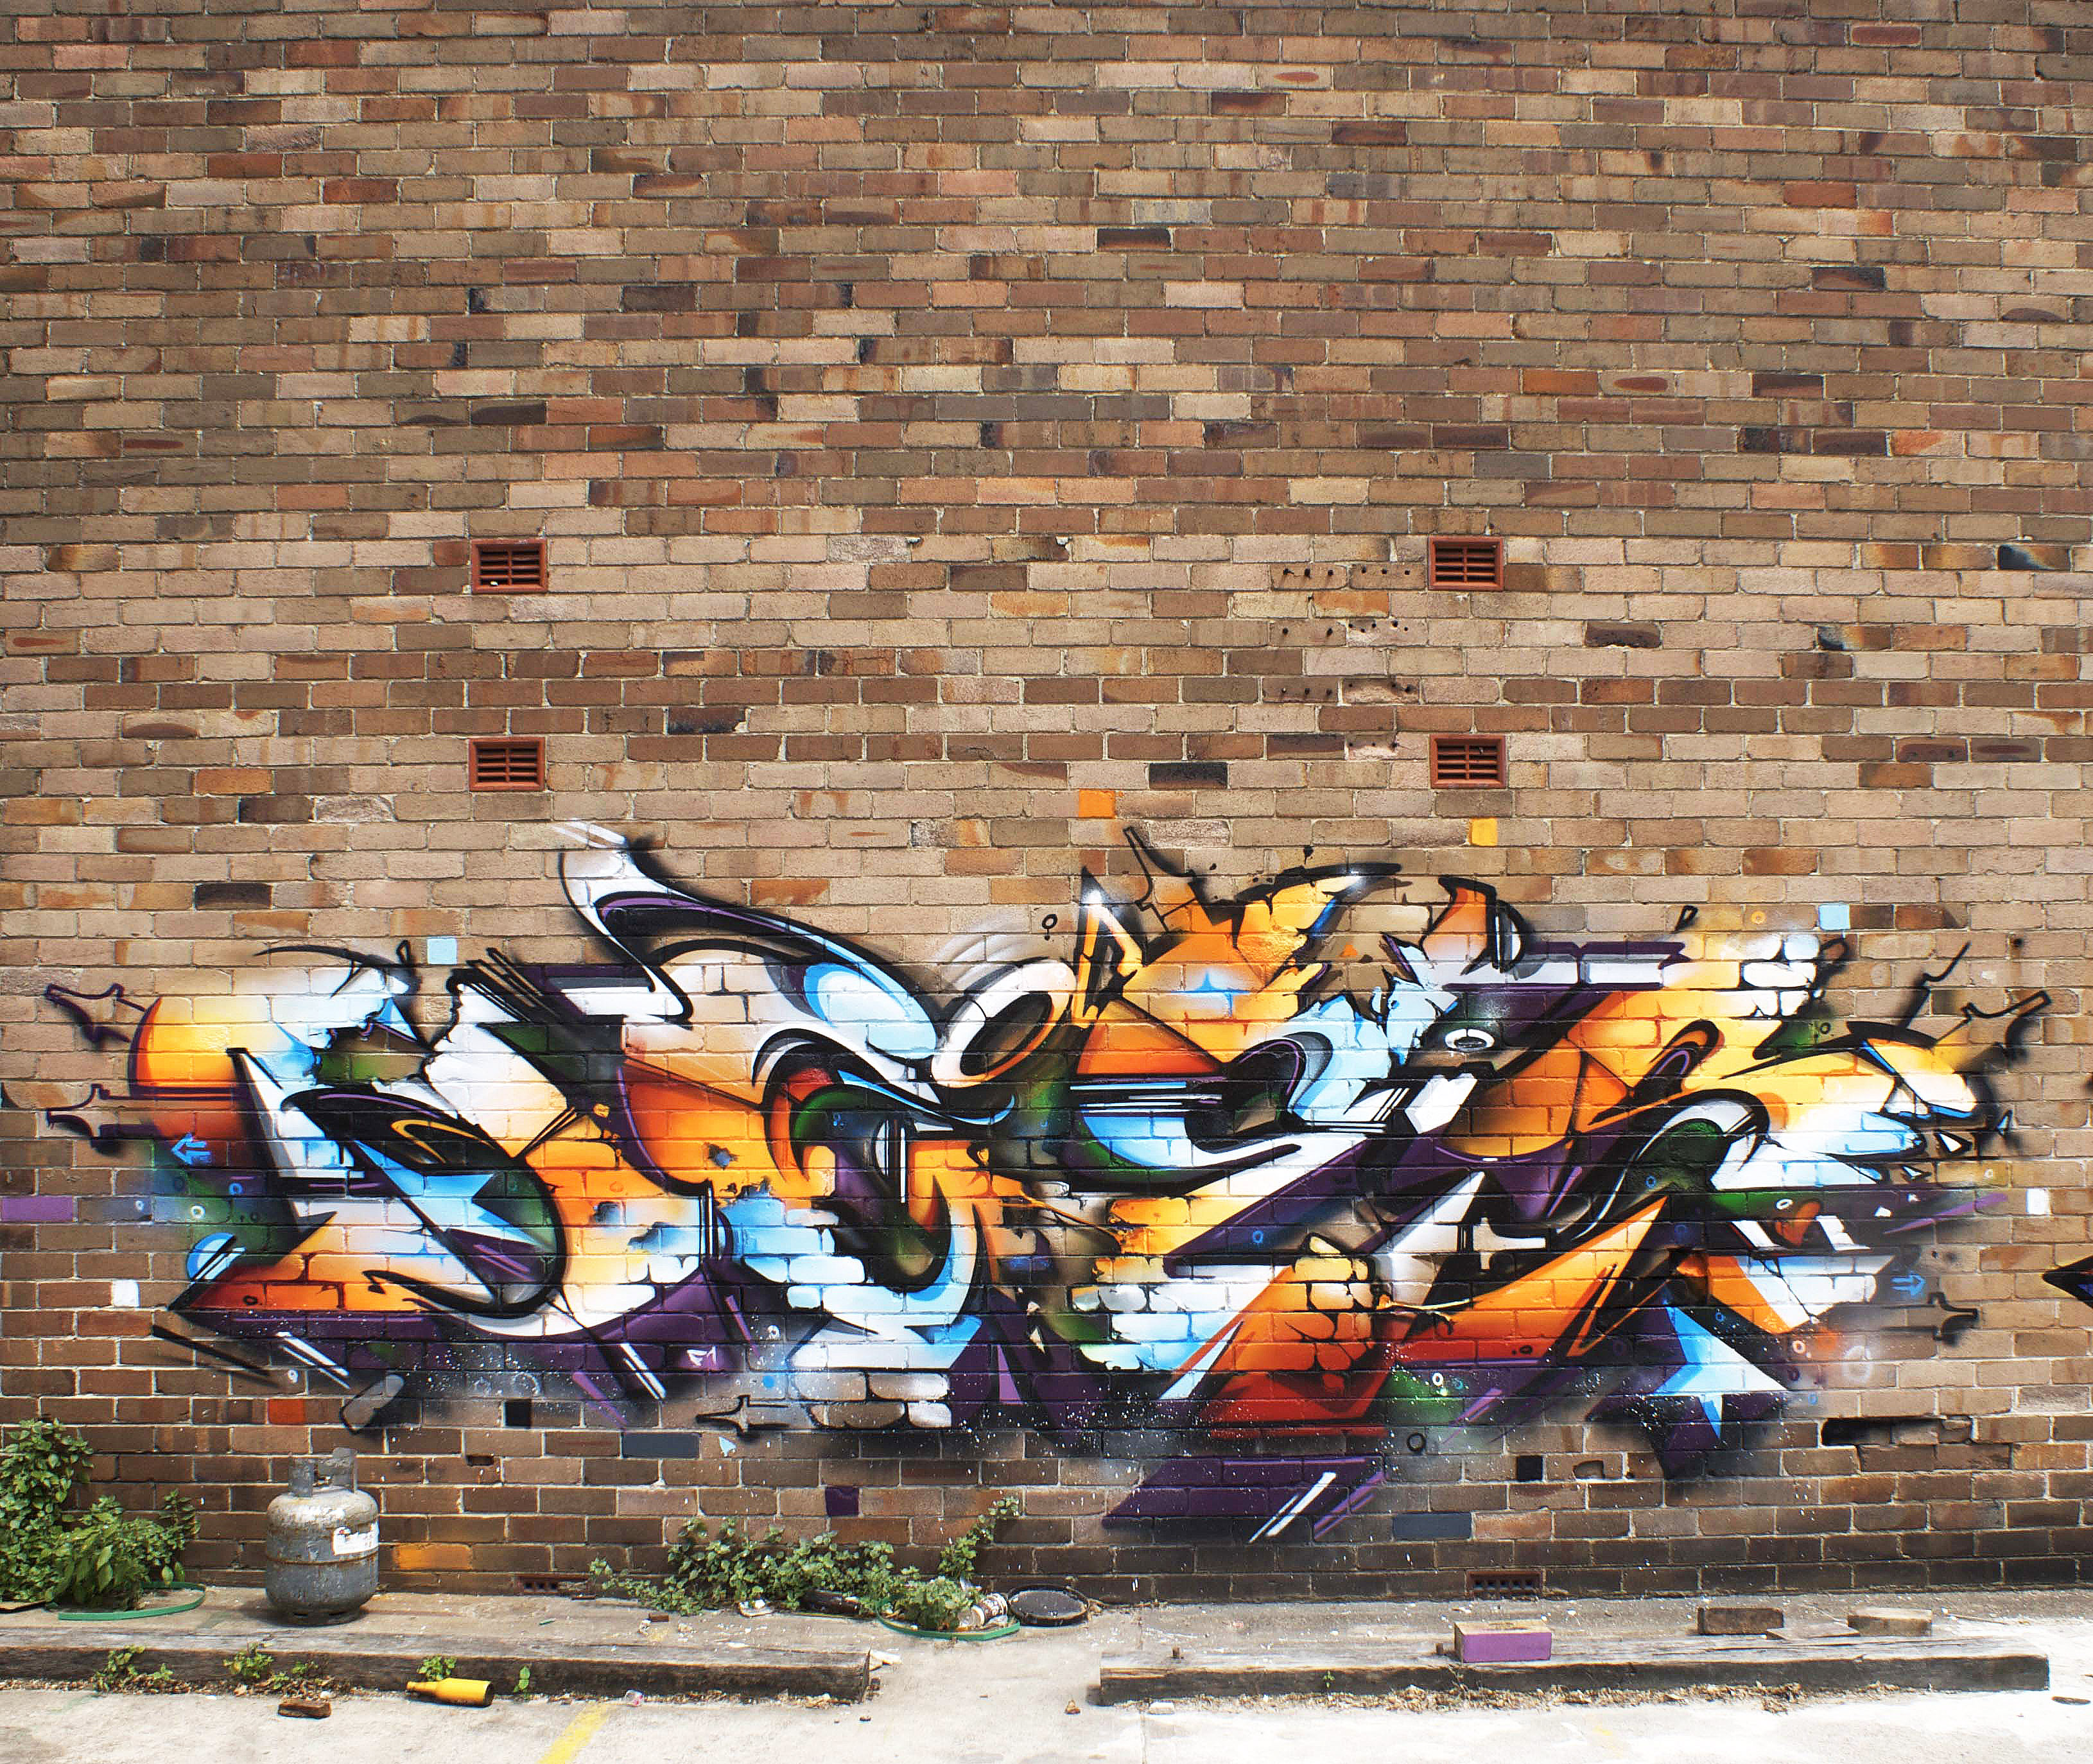 A work by Does - Sydney australia mural bricks